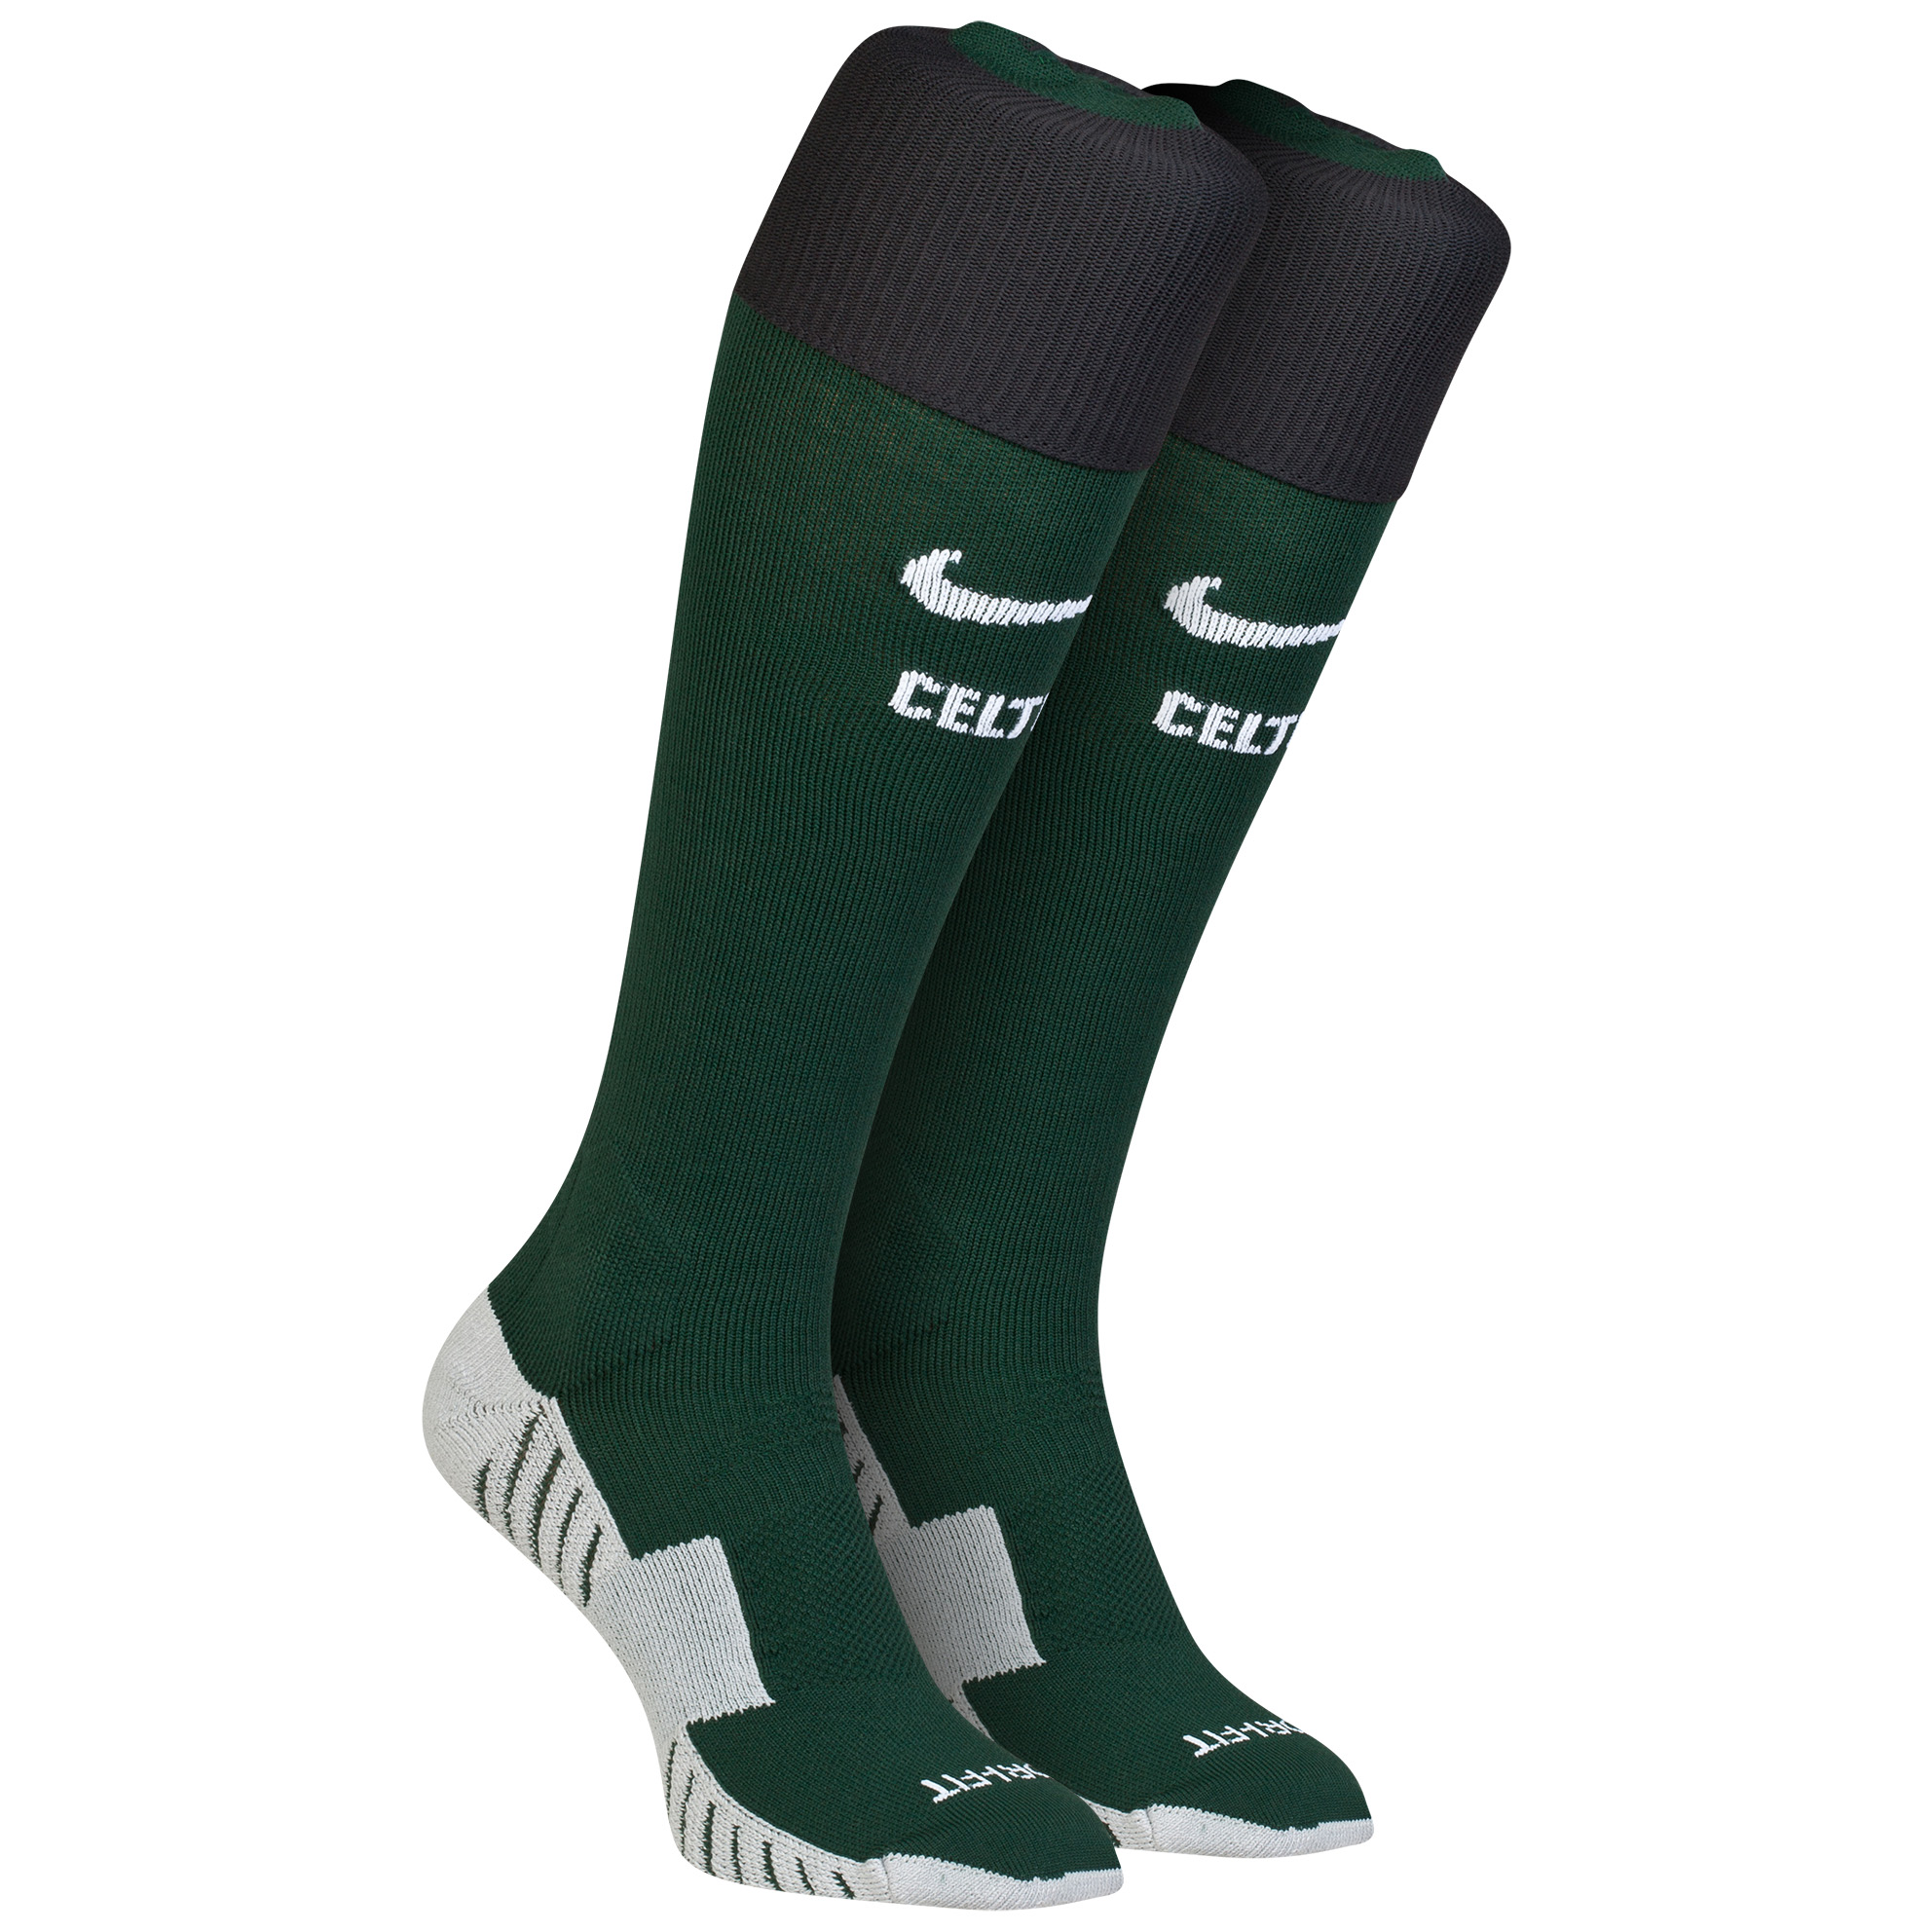 Celtic Away Socks 2014/15 Green